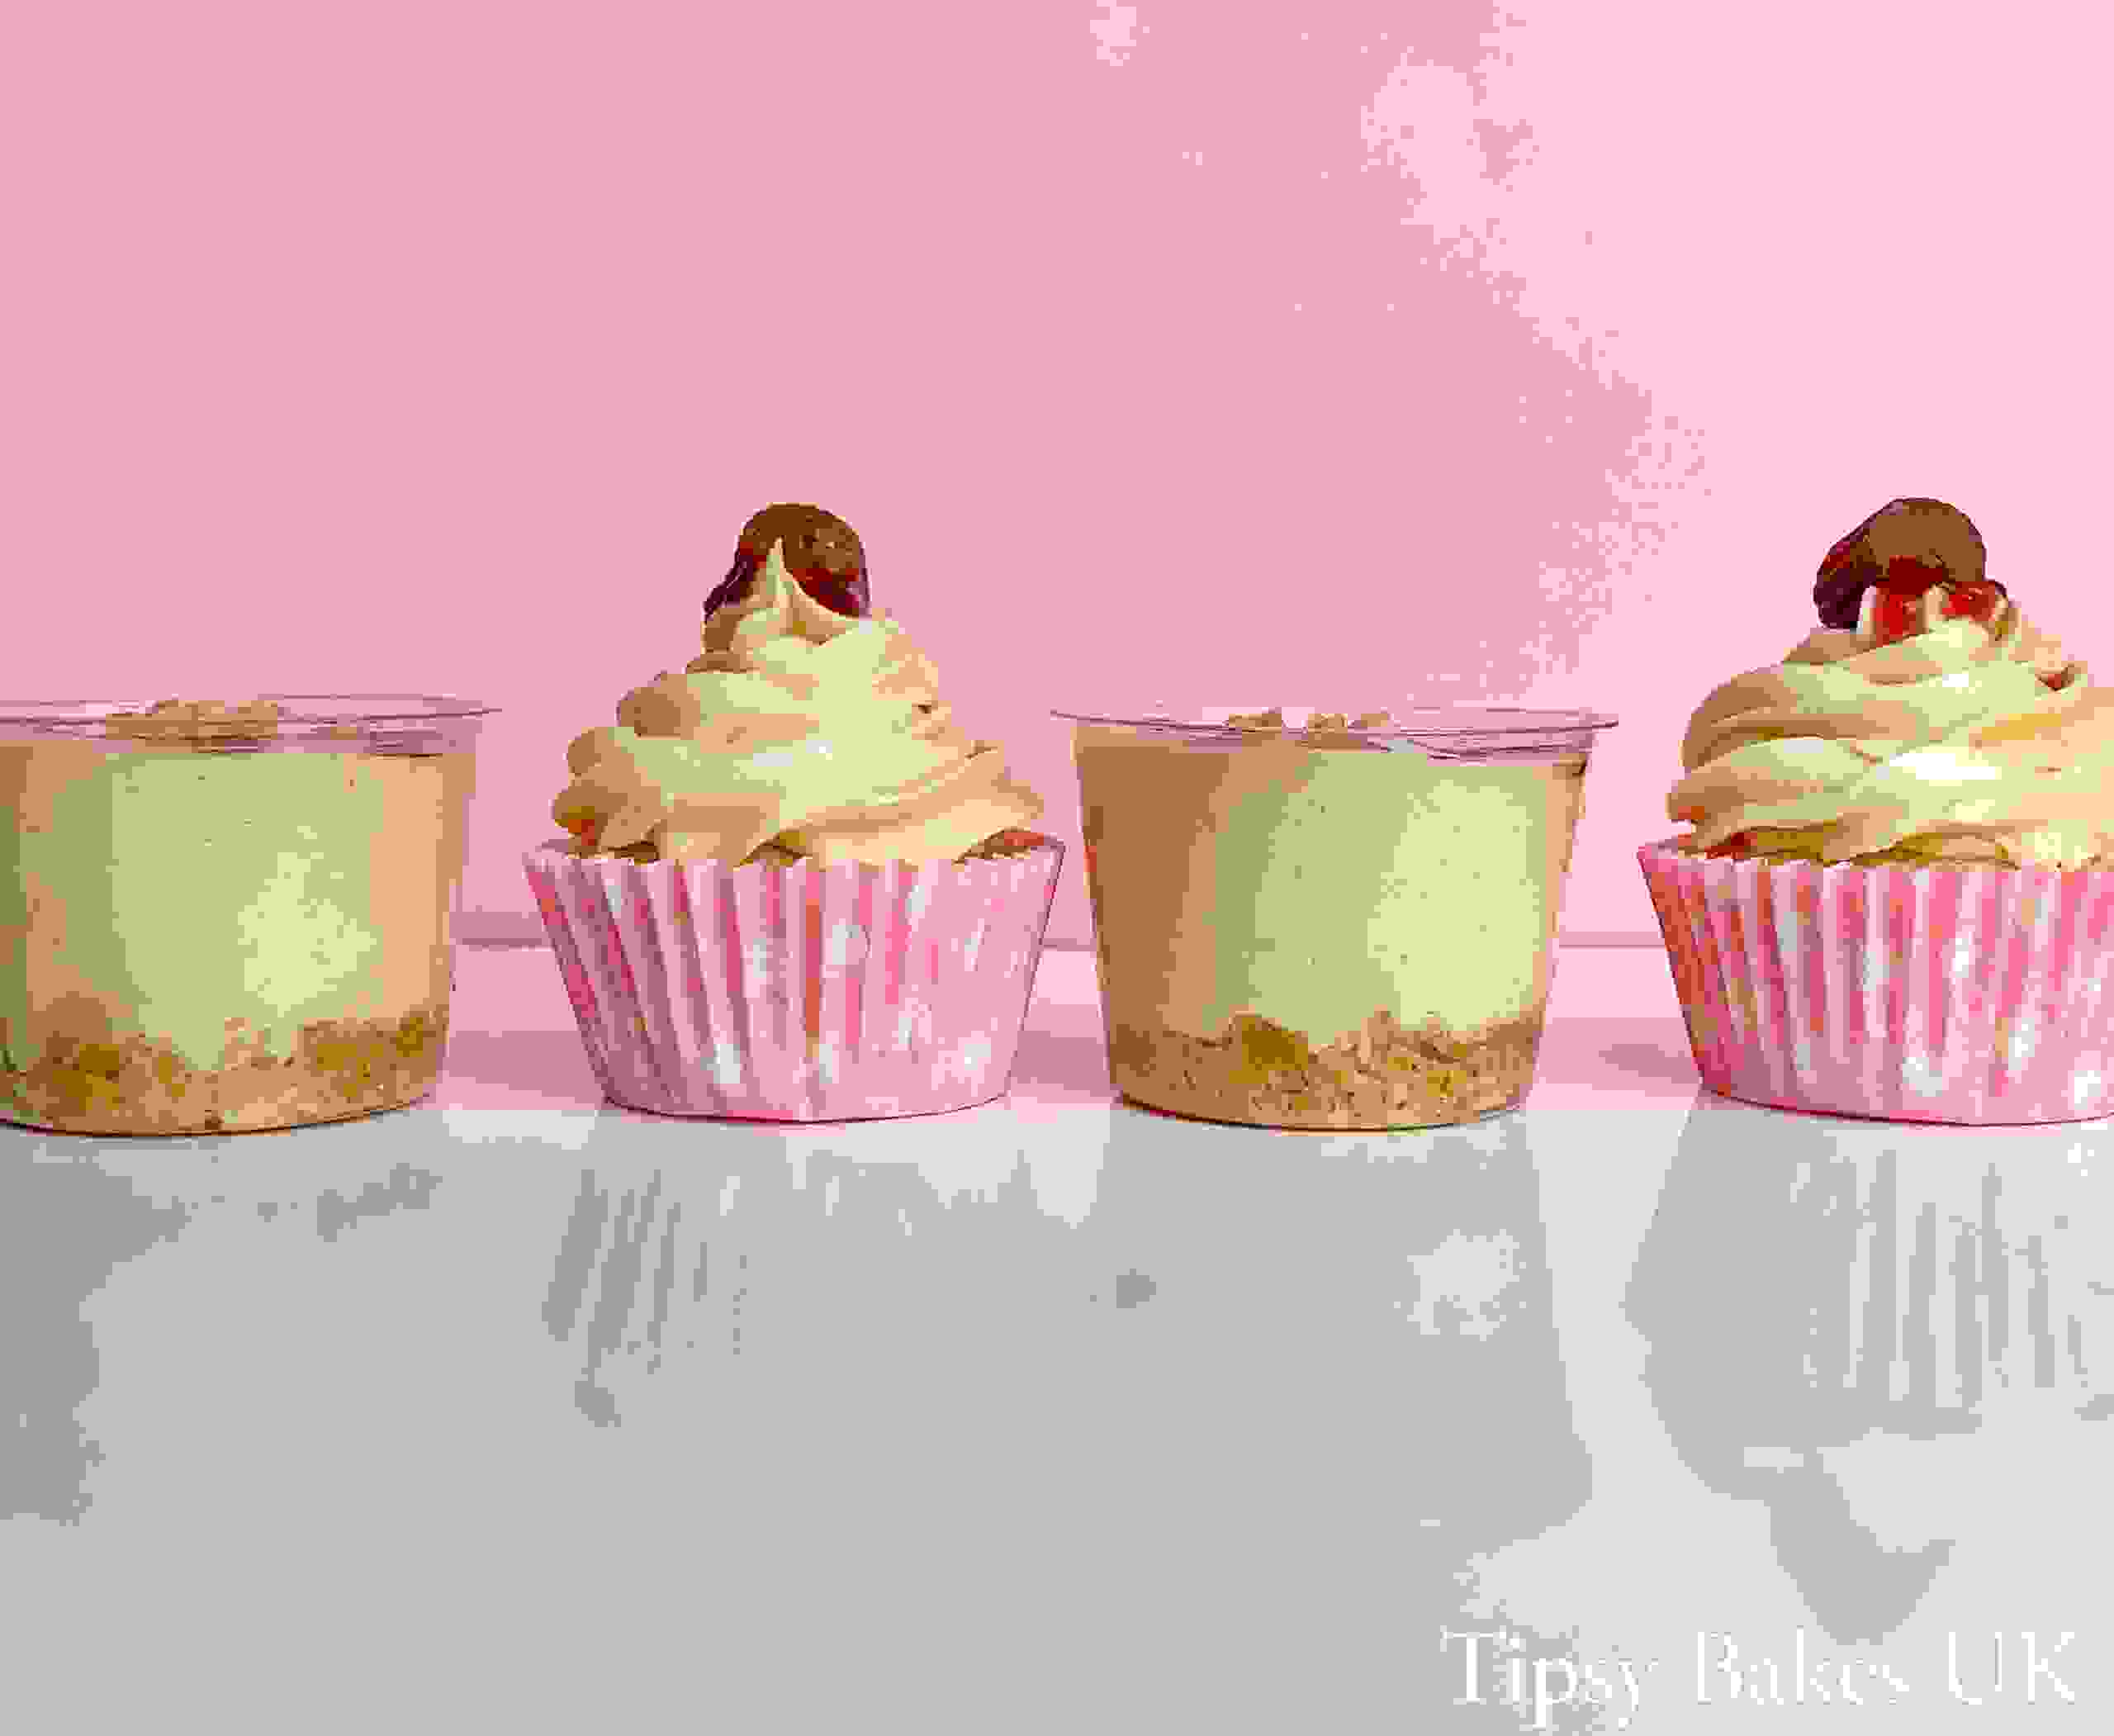 Tipsy Bakes UK, alcoholic cupcakes and cheesecakes, Bradford